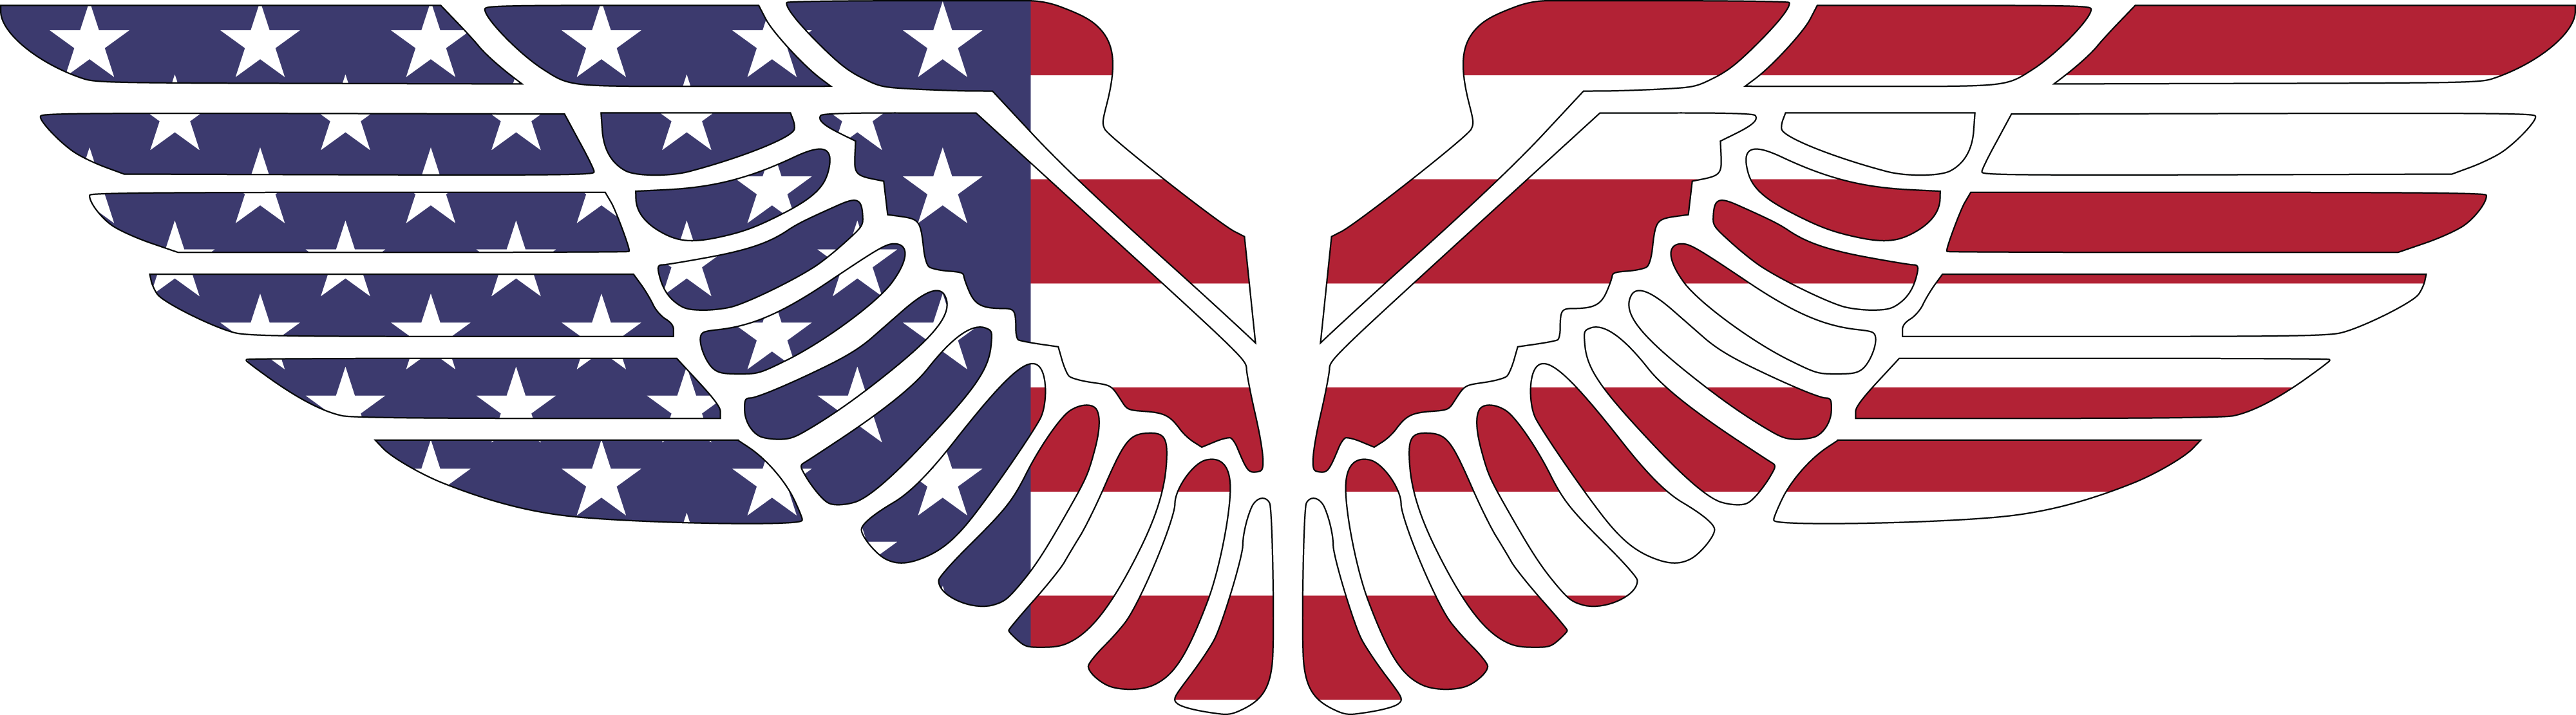 Free Clipart Of eagle wings in american flag pattern